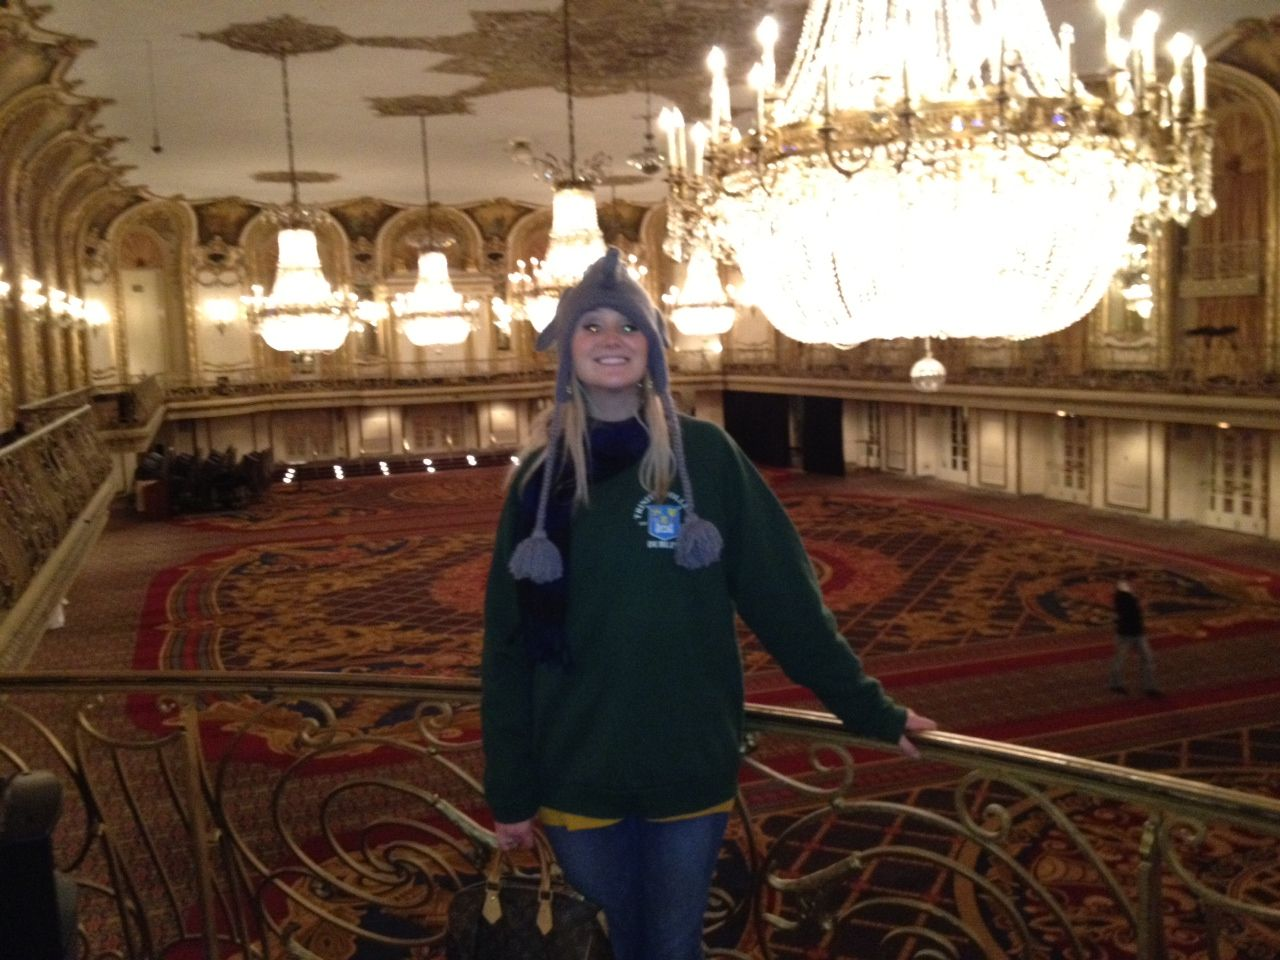 Me looking very un-glamorous at the ballroom in the Hilton Chicago: Wedding venue contender